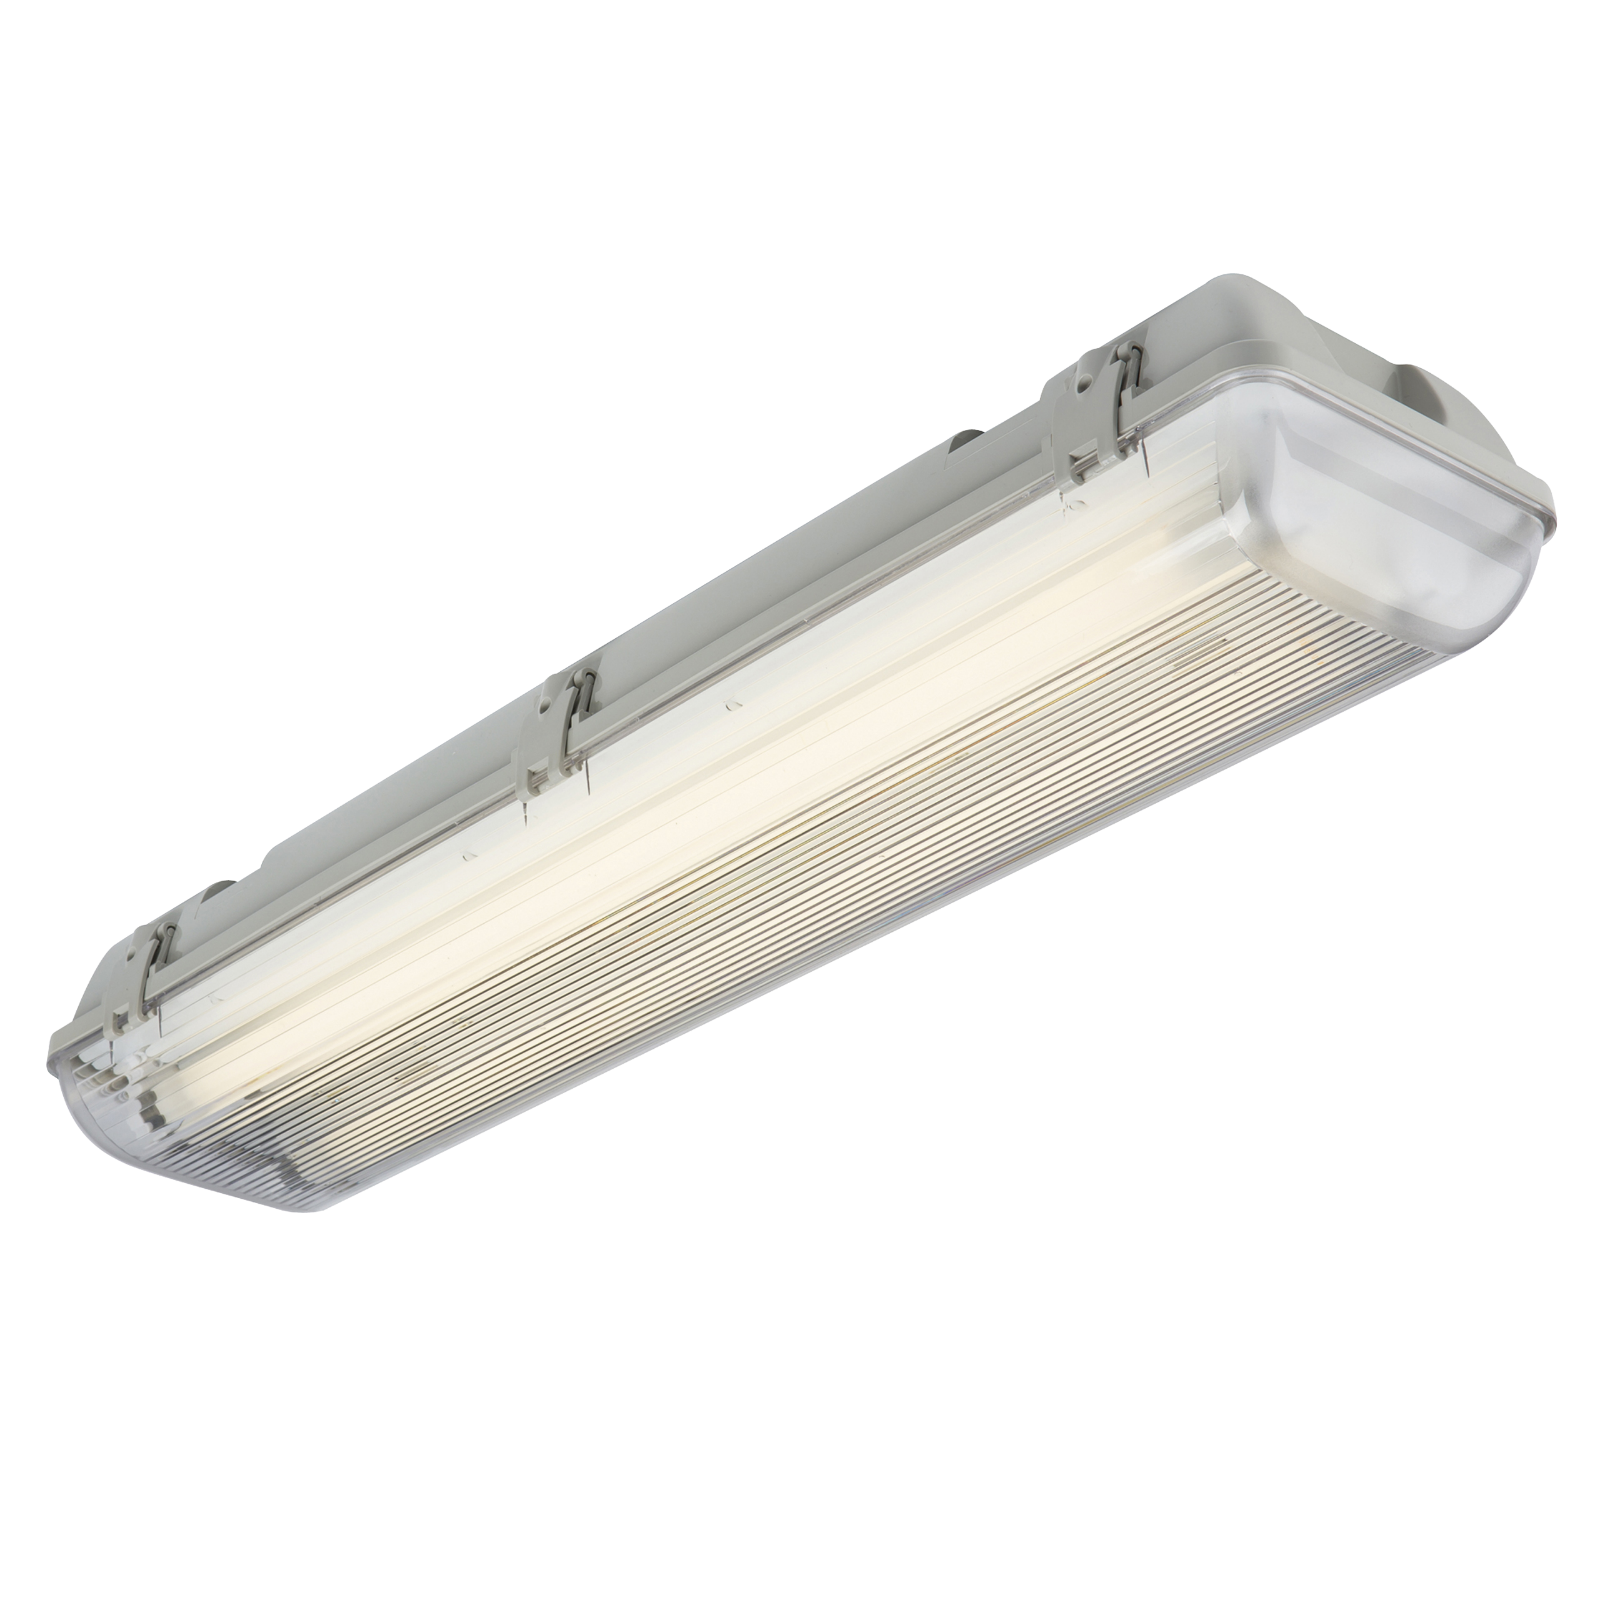 240V IP65 2x58W HF Twin Non-Corrosive Fluorescent Fitting